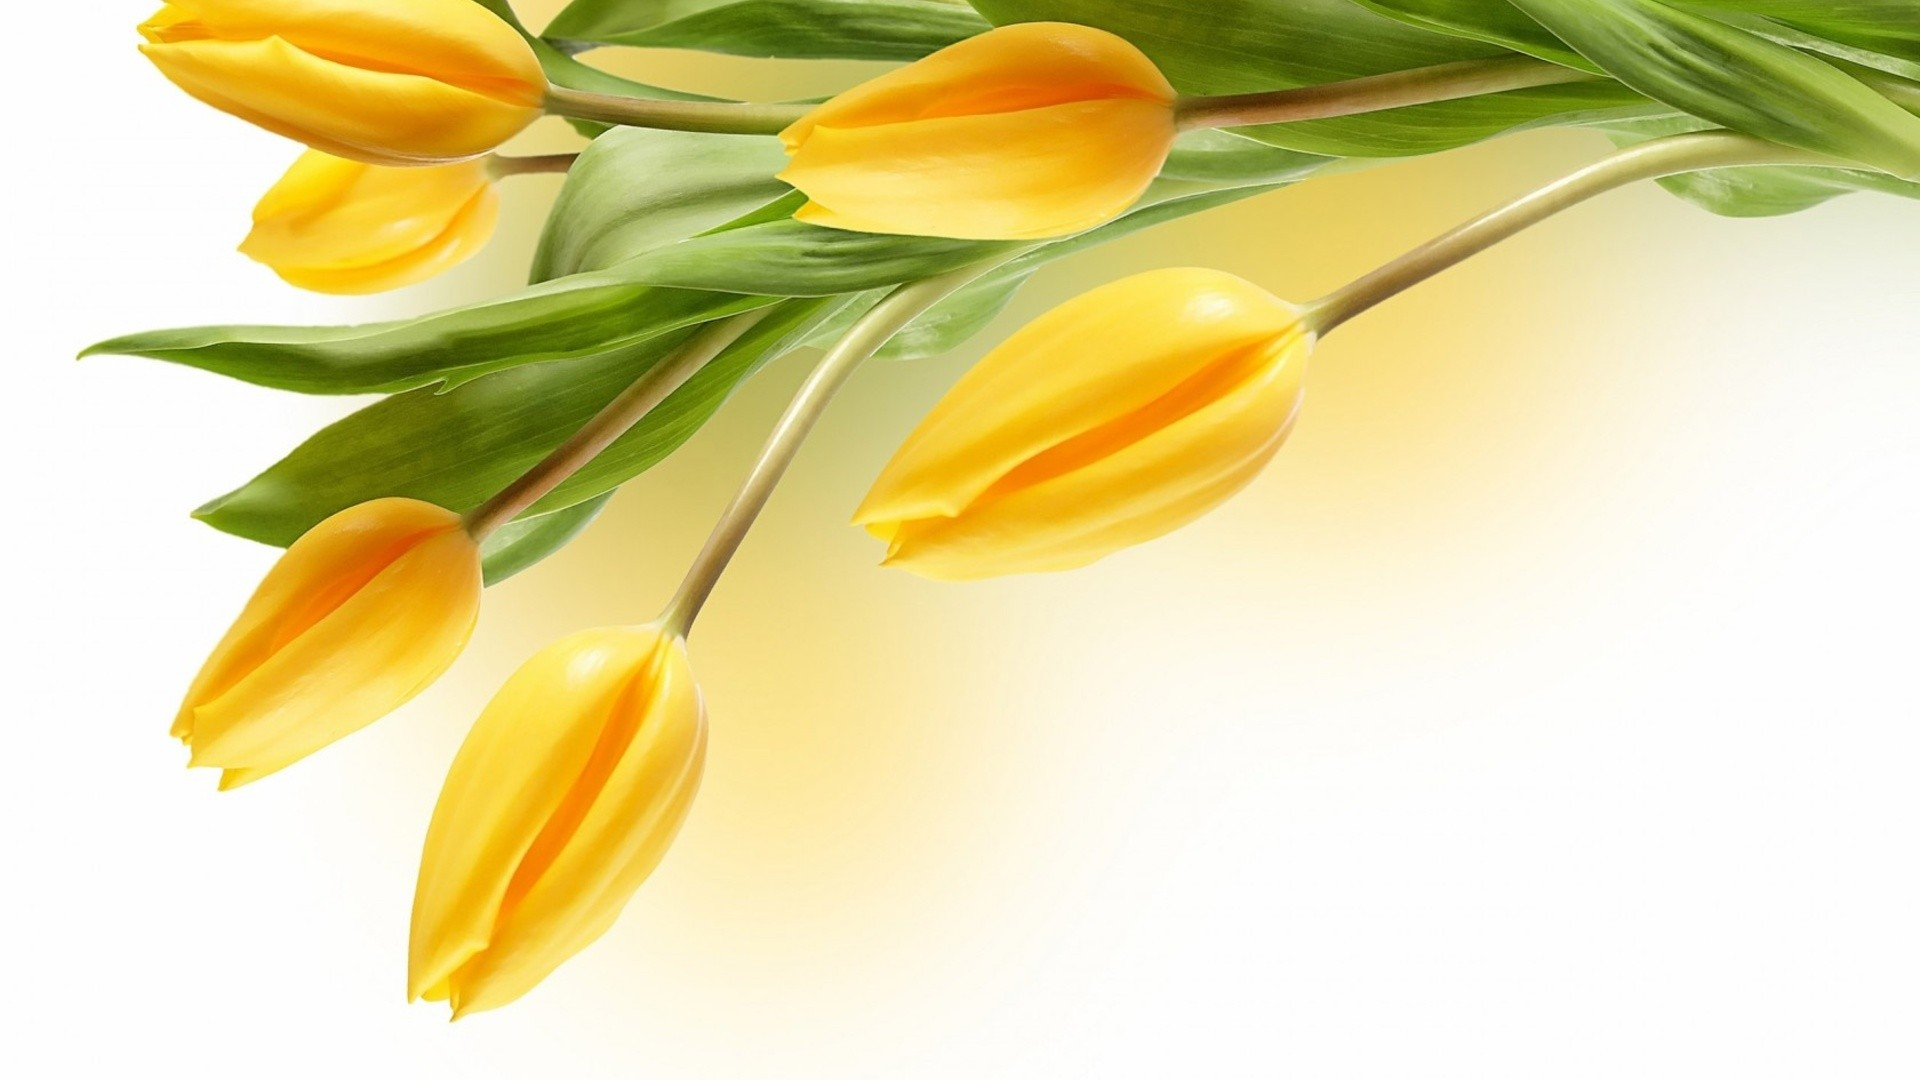 International Women's Day Flowers desktop image